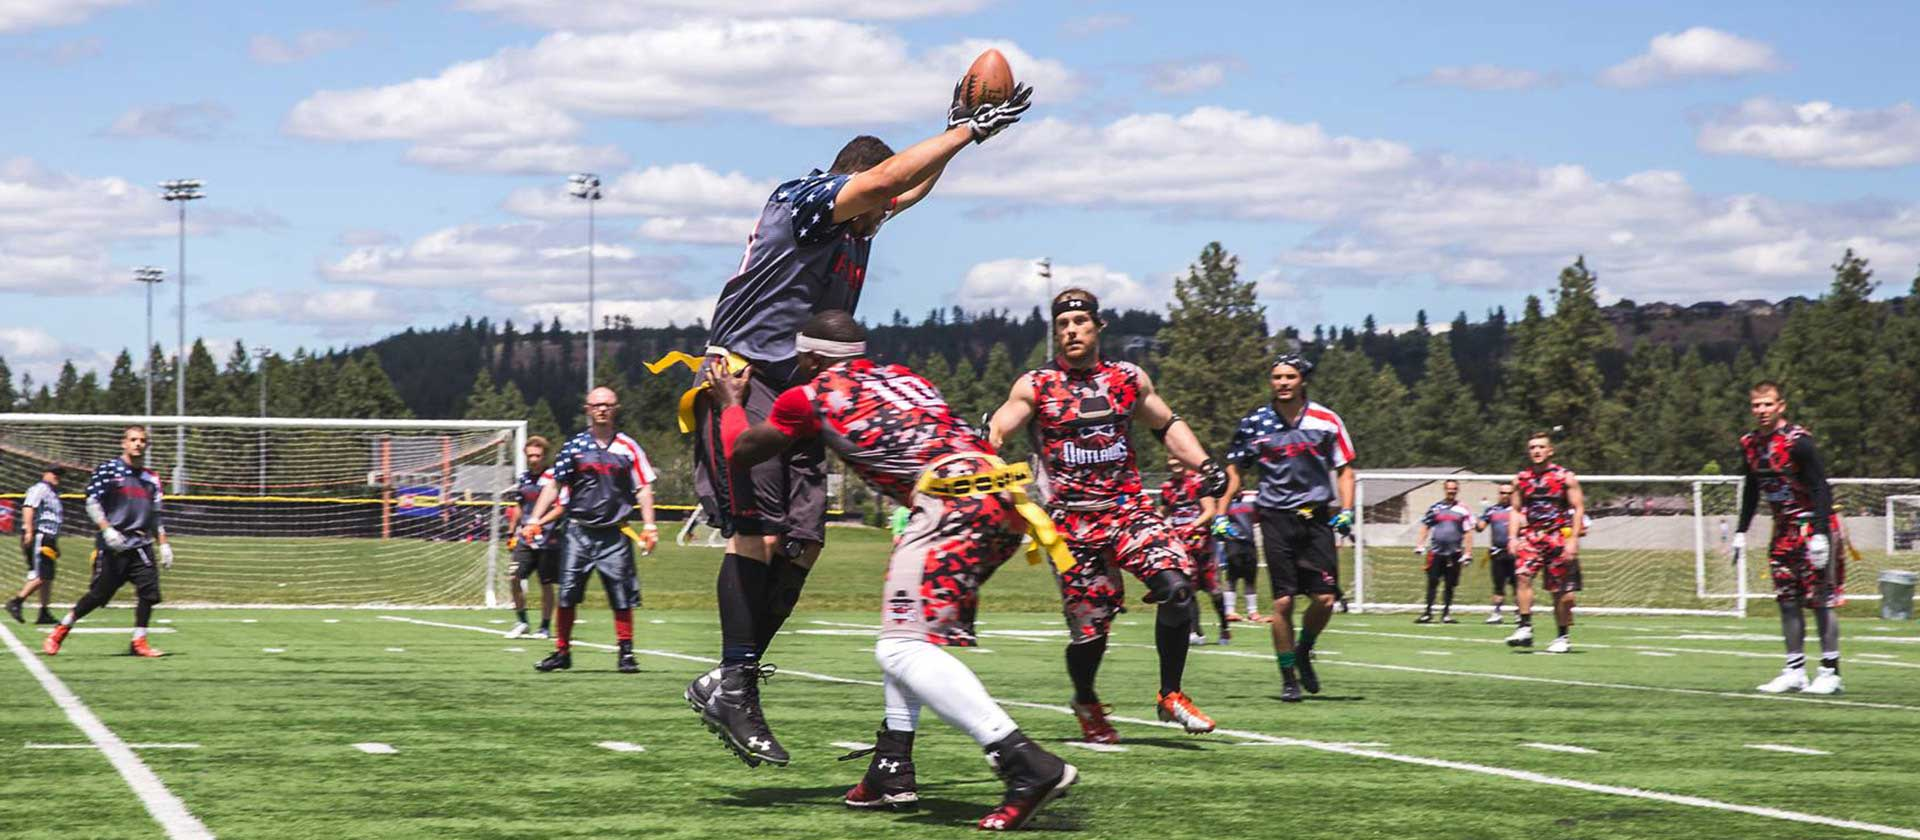 Sports Recreation Flag Football - City of Spokane, Washington